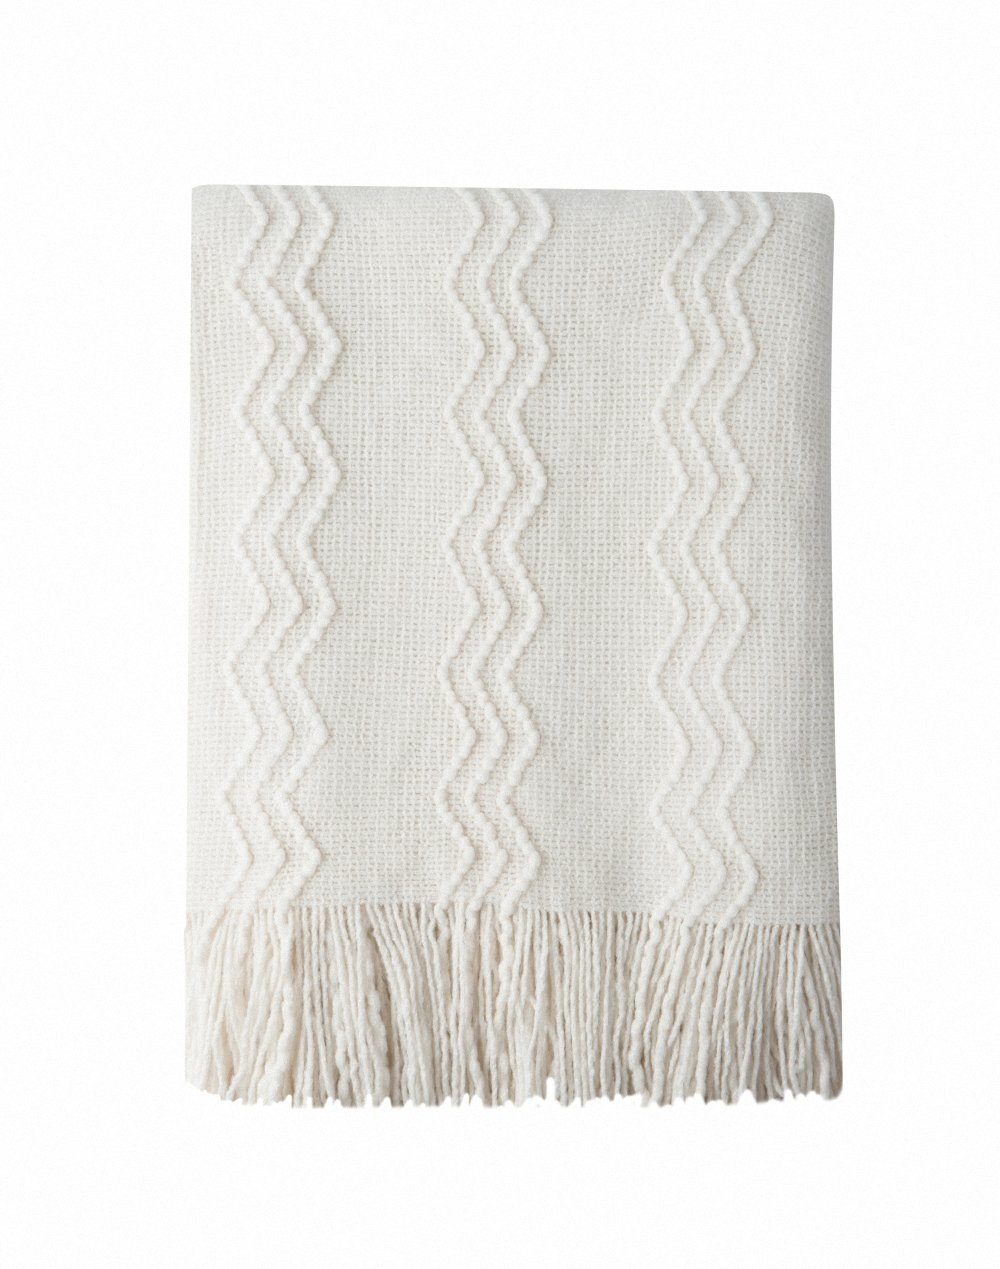 Bourina Throw Blanket Textured Solid Soft Sofa Couch Decorative Knitted Blanket, 50'' x 60'',Off White